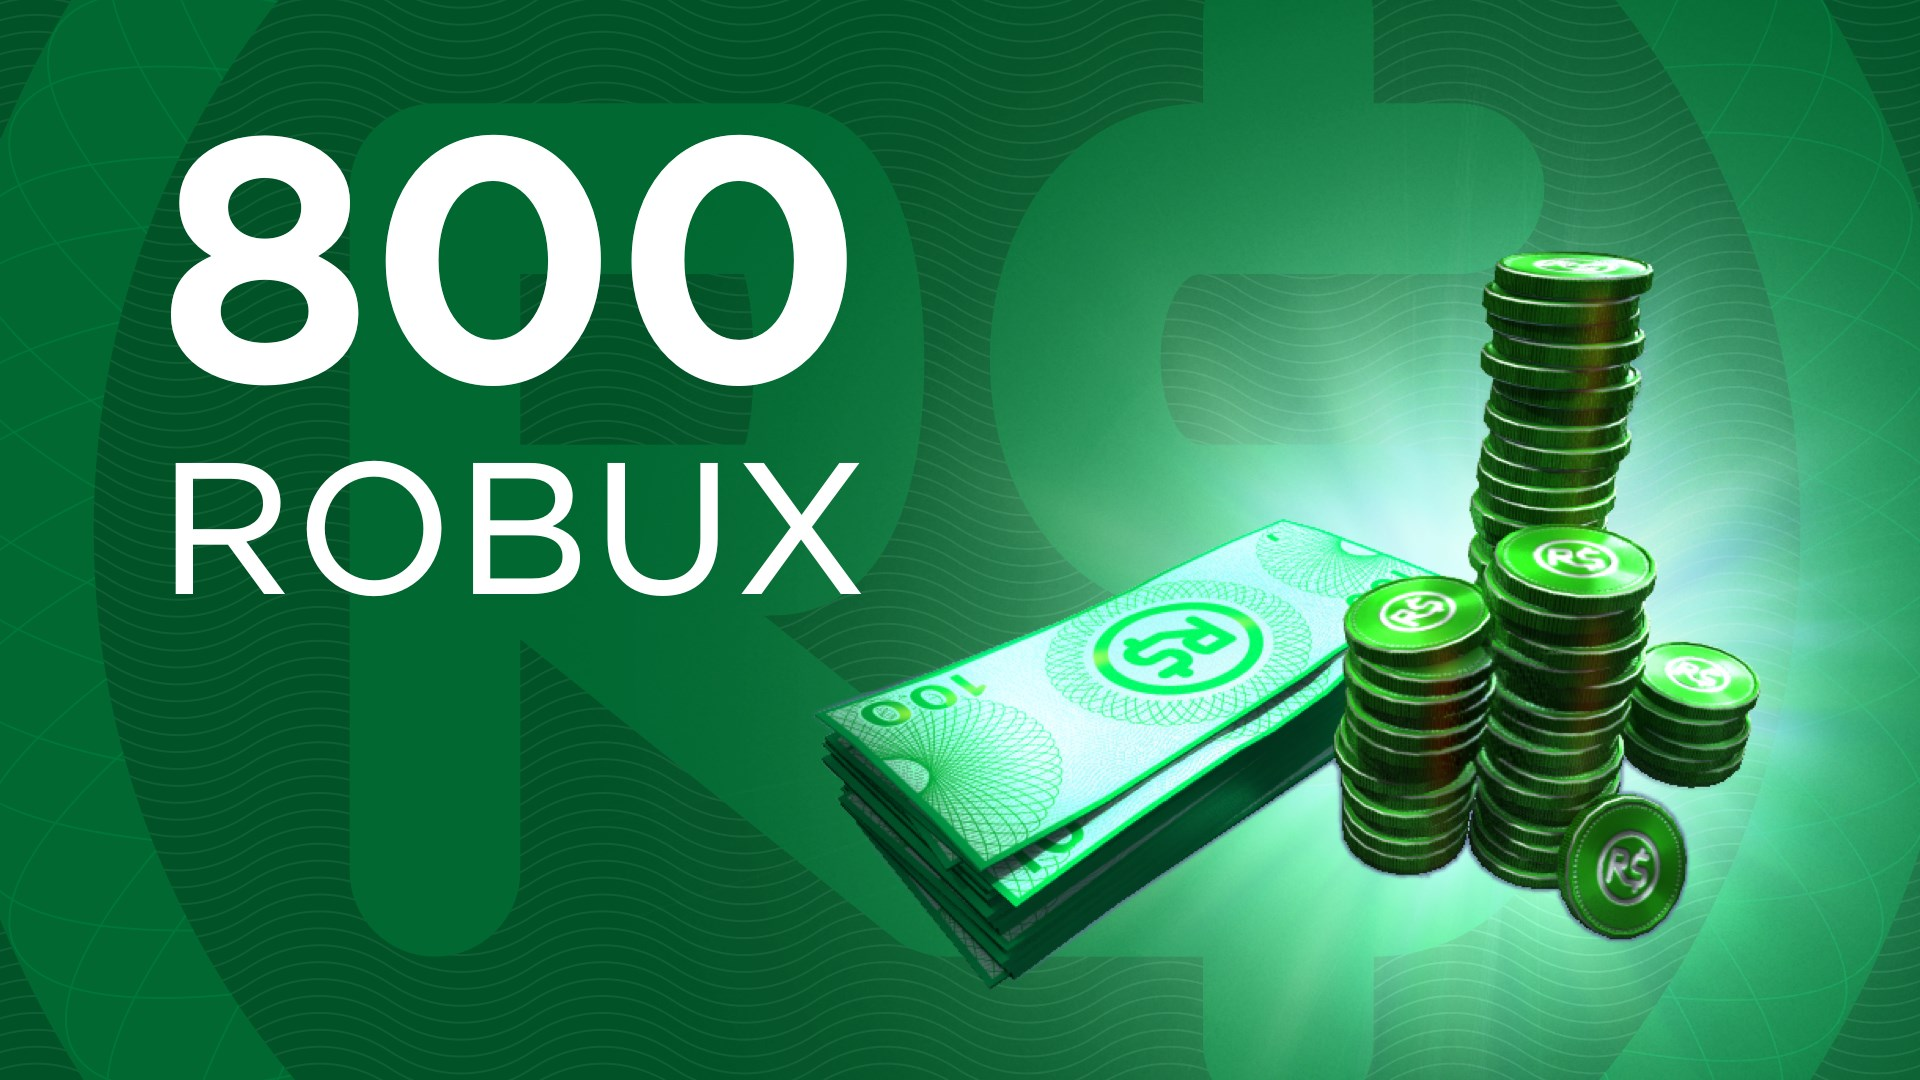 Buy 800 Robux for Xbox - Microsoft Store